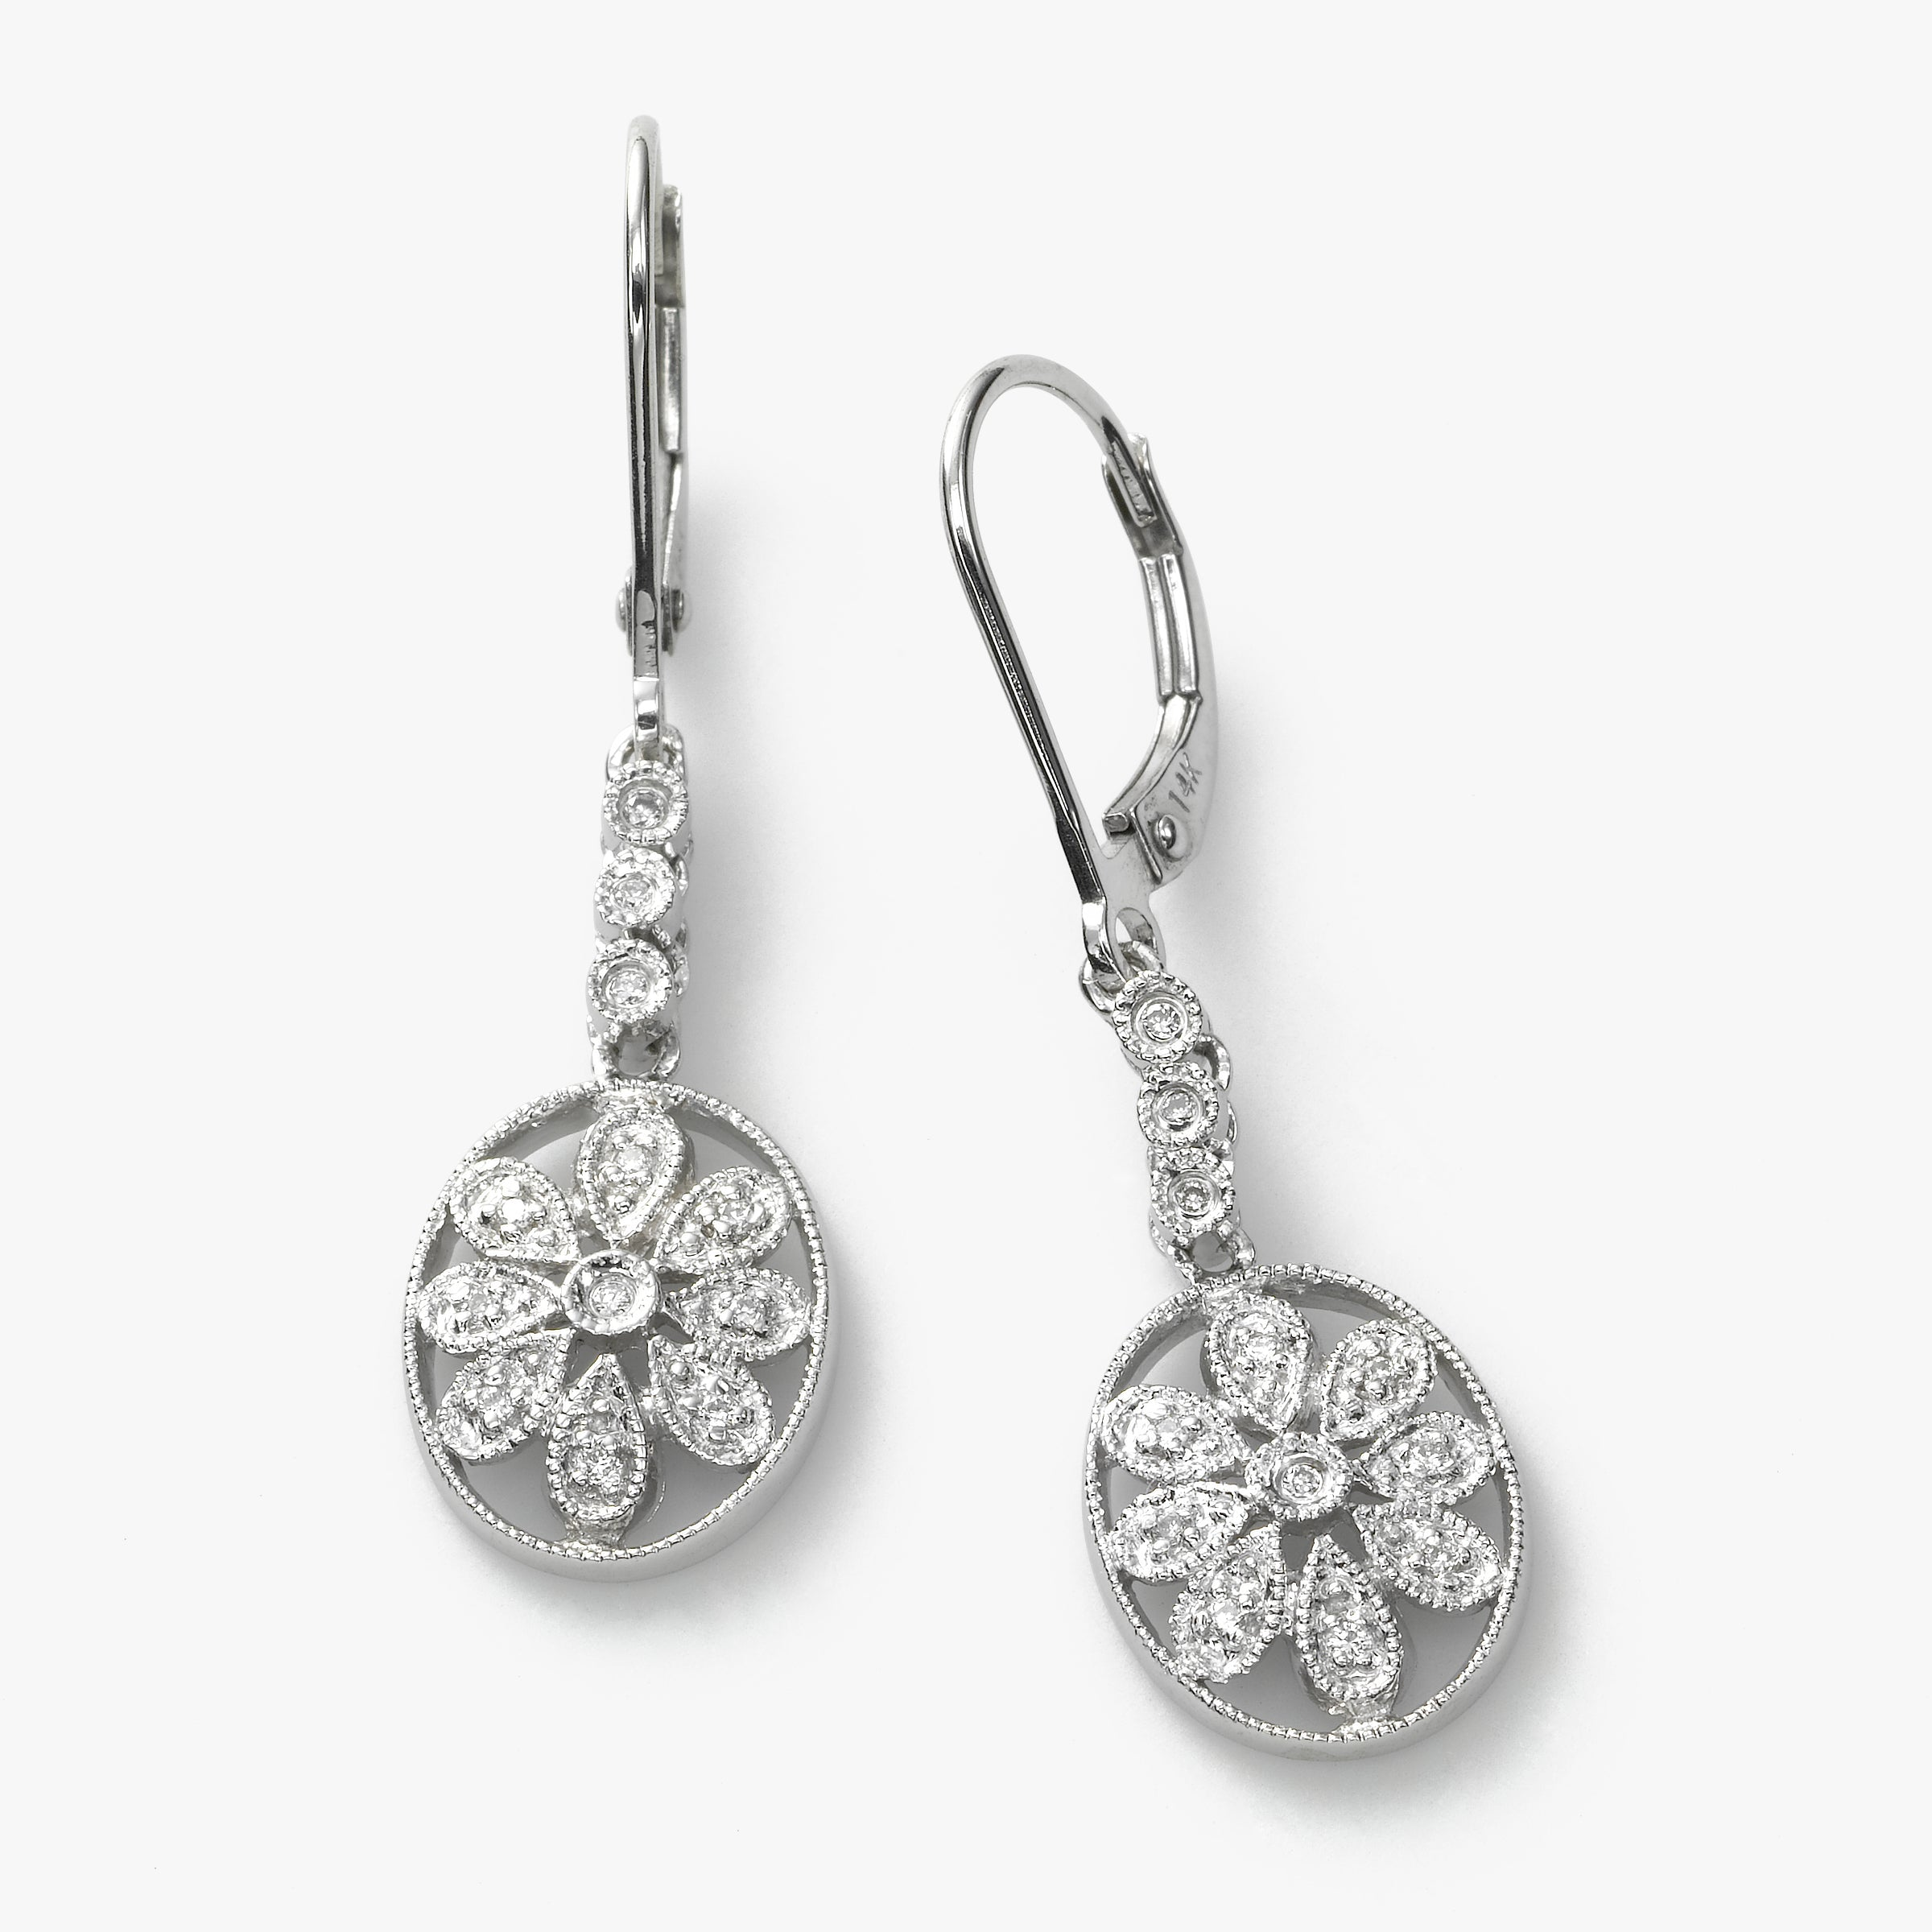 Oval Floral Design Diamond Earring, 14K White Gold